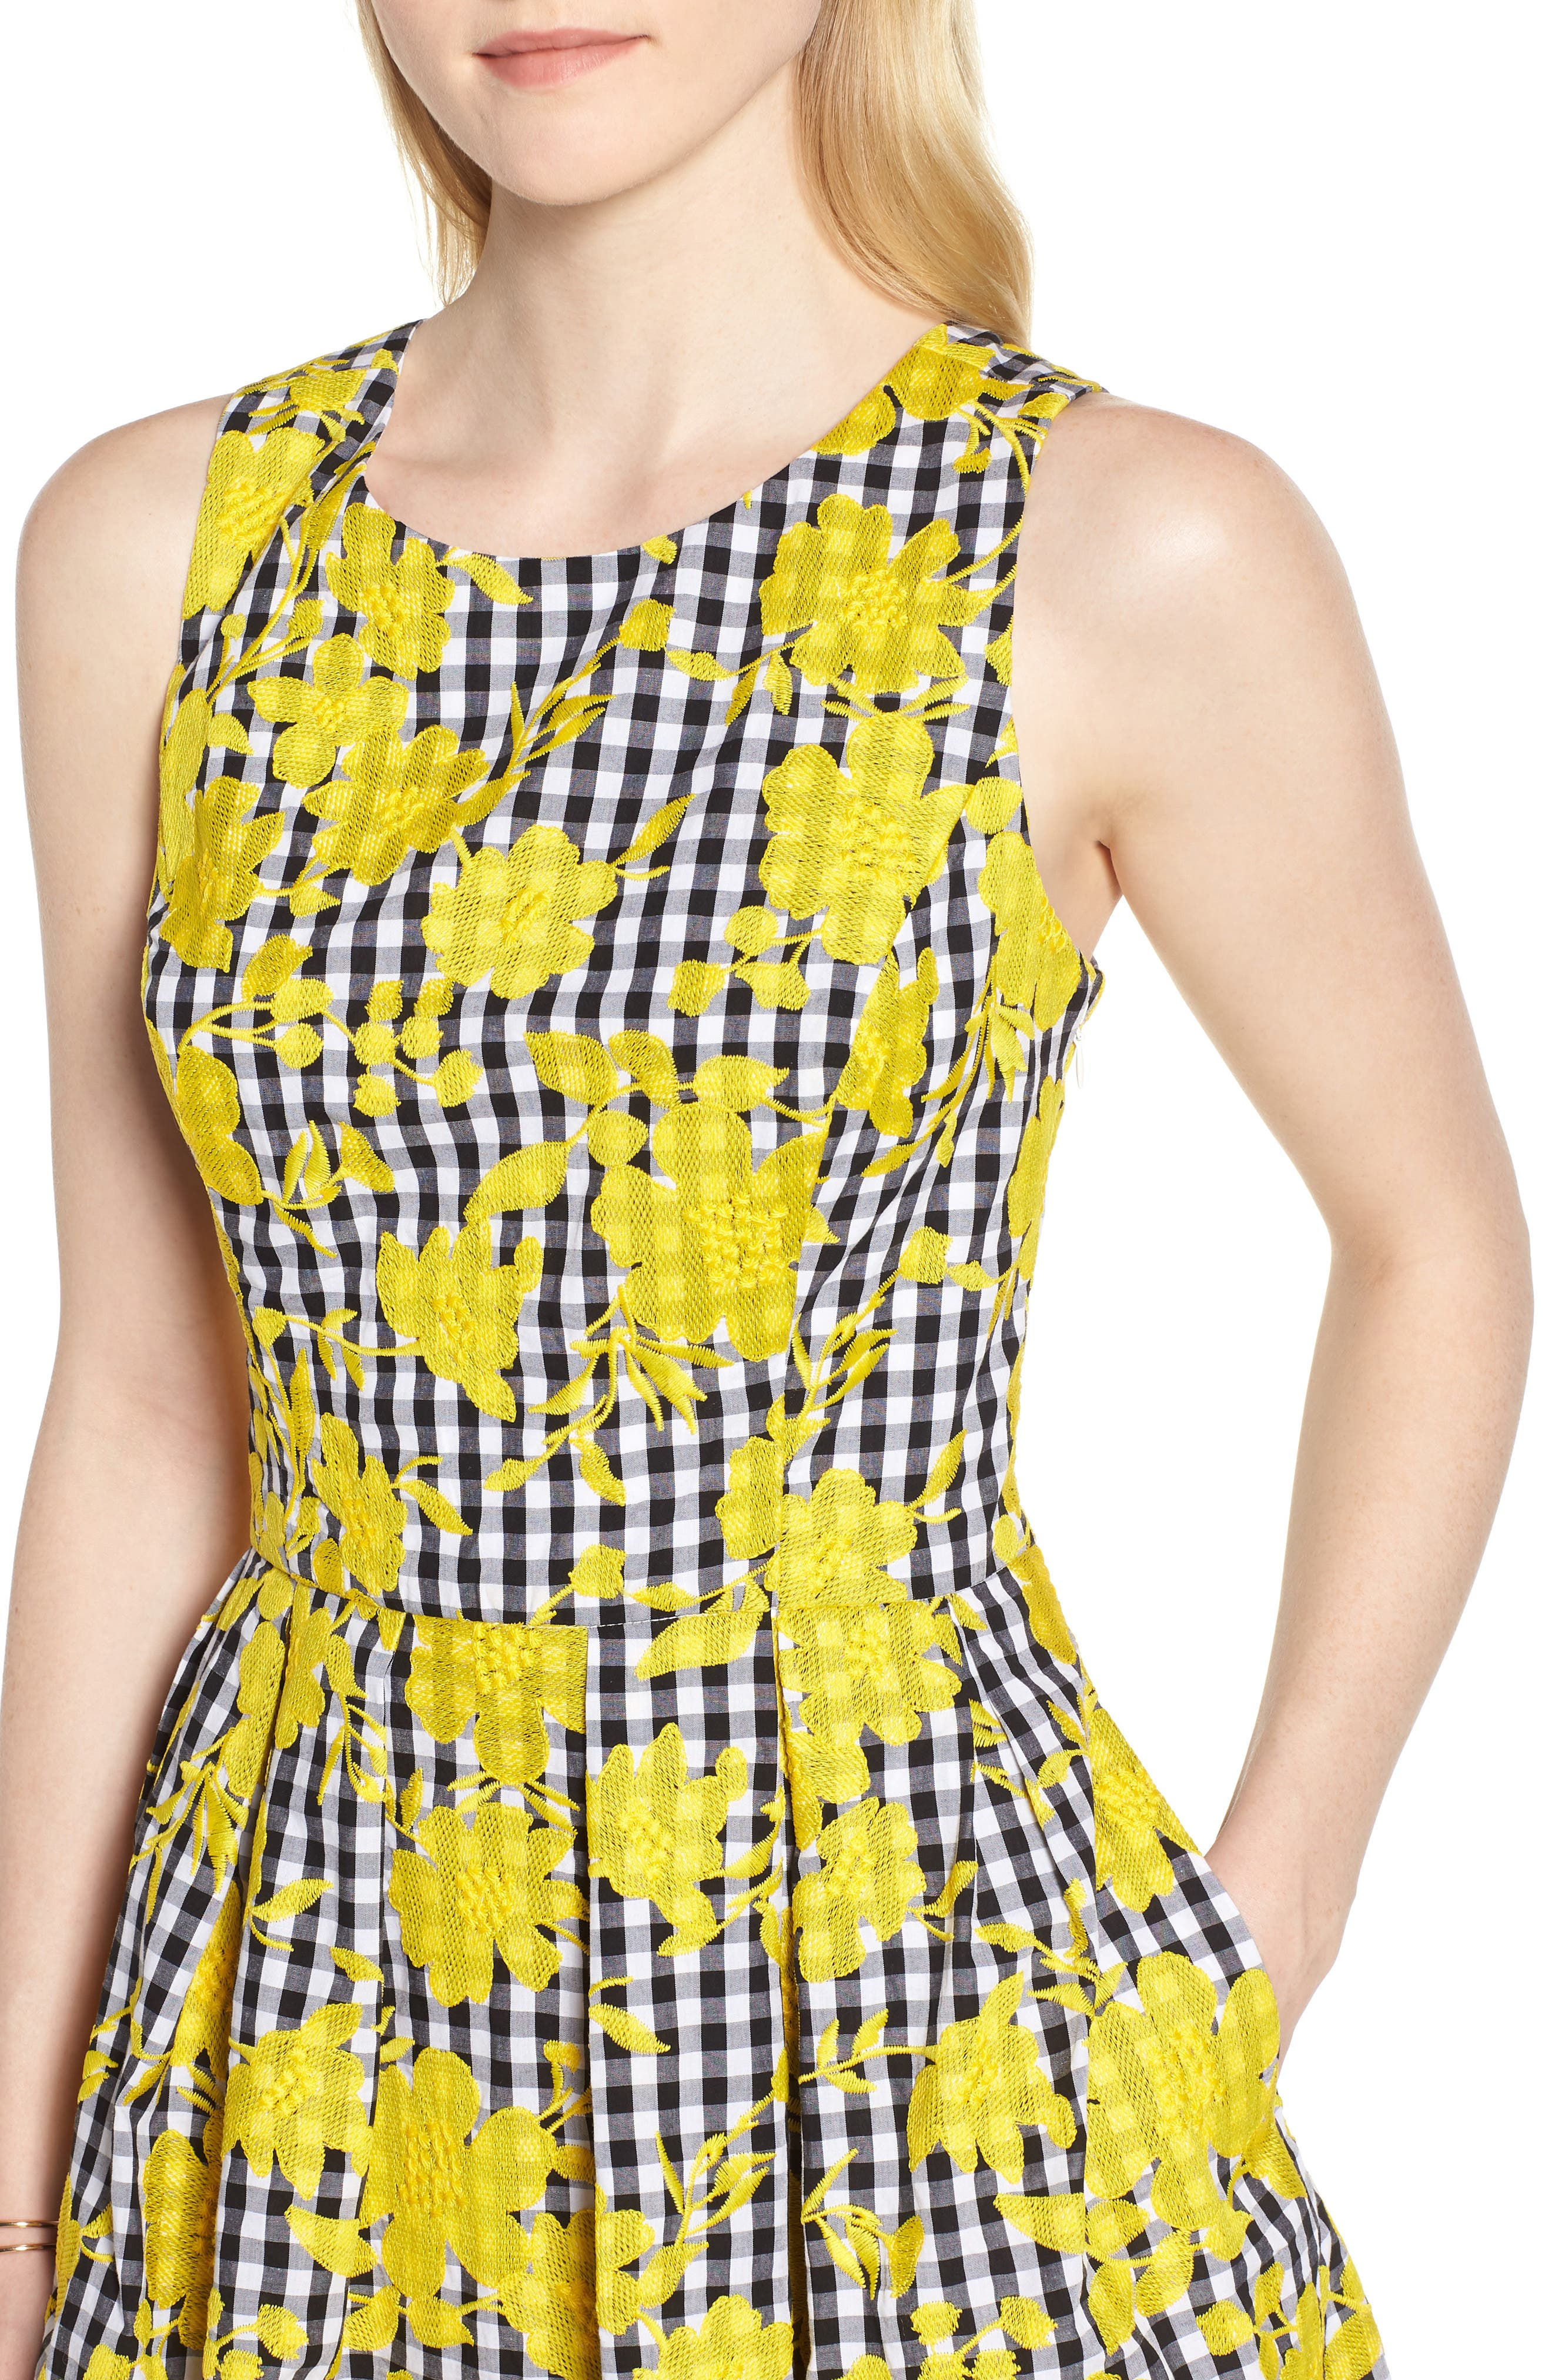 Embroidered Cross Back Cotton Gingham Dress,                             Alternate thumbnail 4, color,                             Yellow- Black Gingham